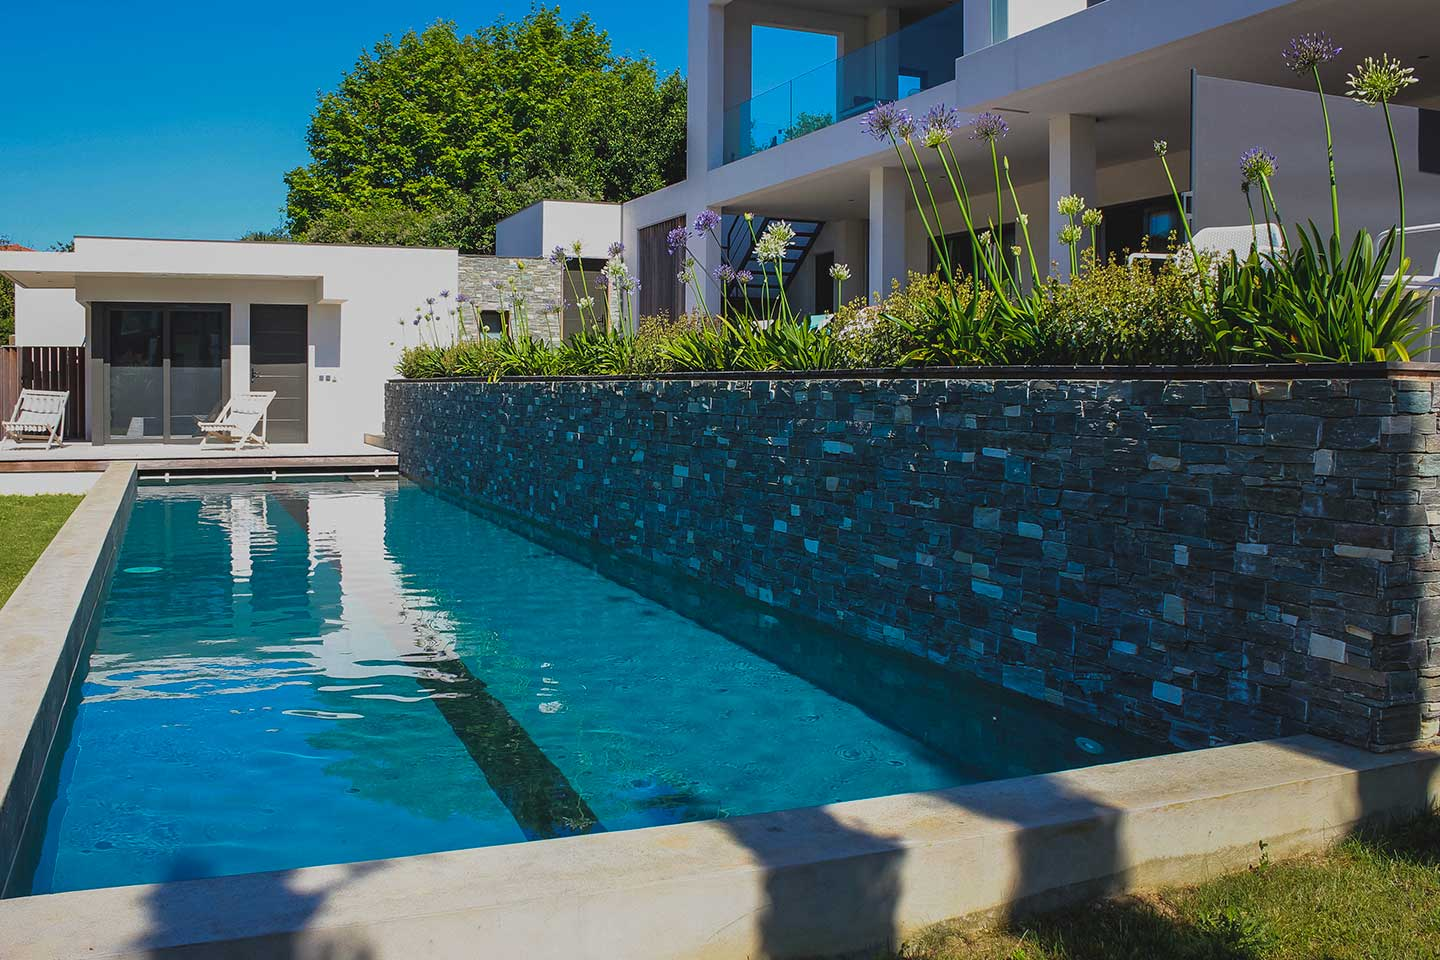 LAKEVIEW, Rent an architect villa with swimming pool in Biarritz